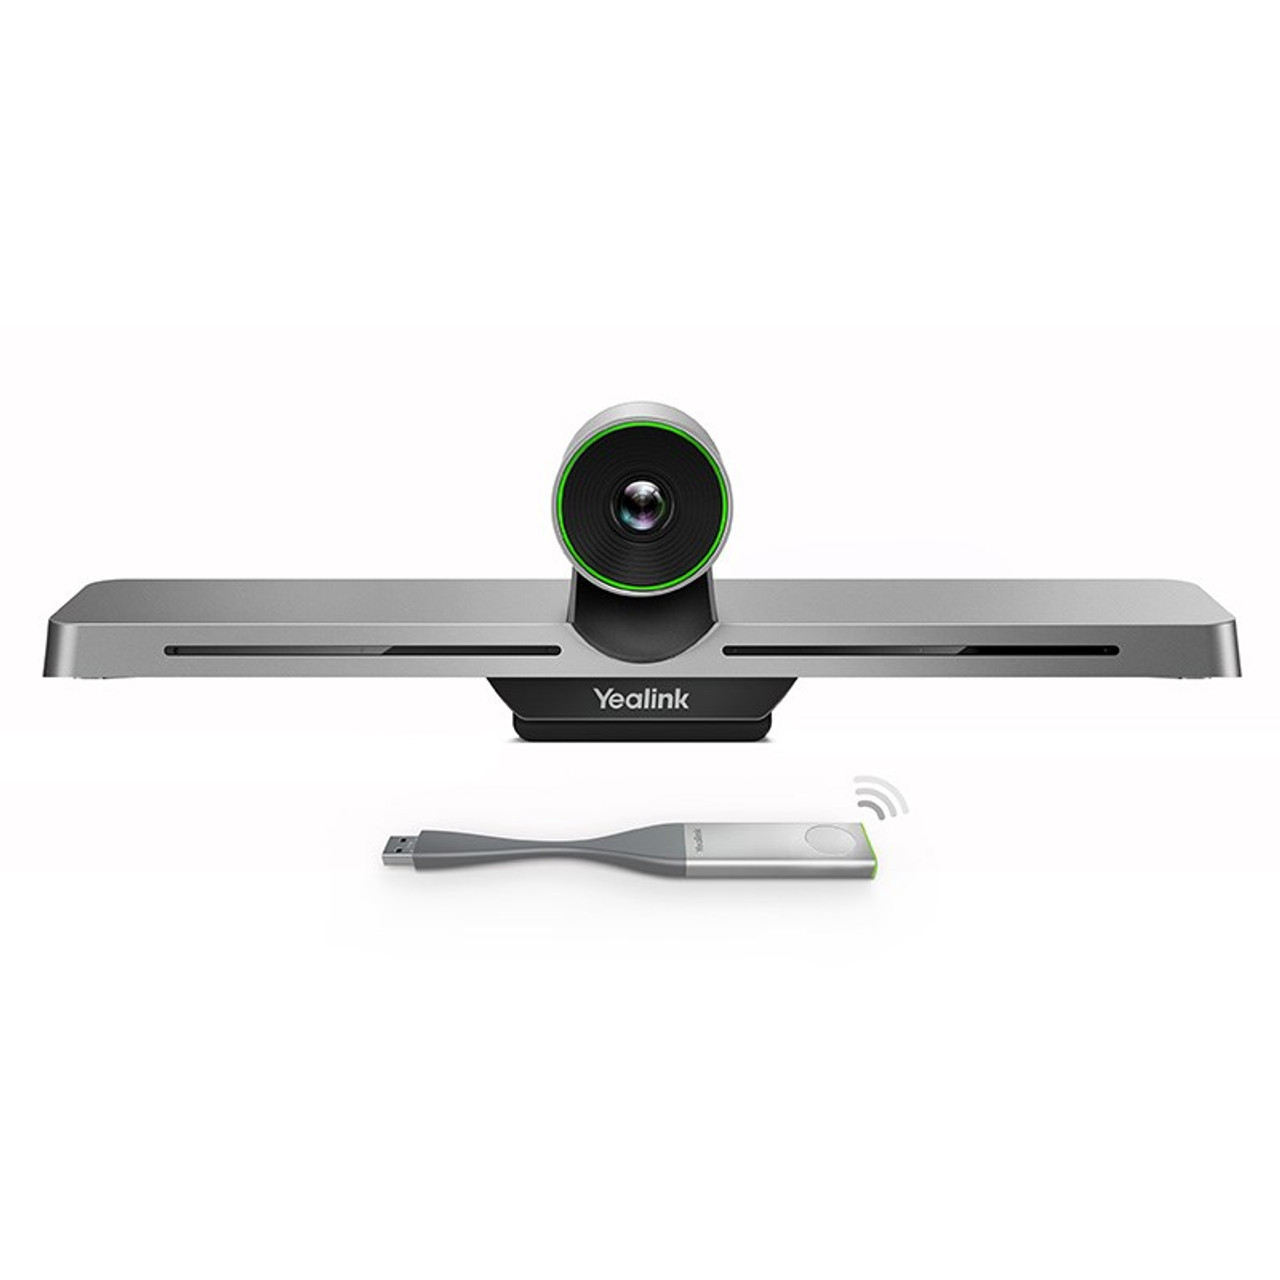 Image for Yealink VC200-WP Smart Video Conferencing System with Wireless Presentation Pod CX Computer Superstore